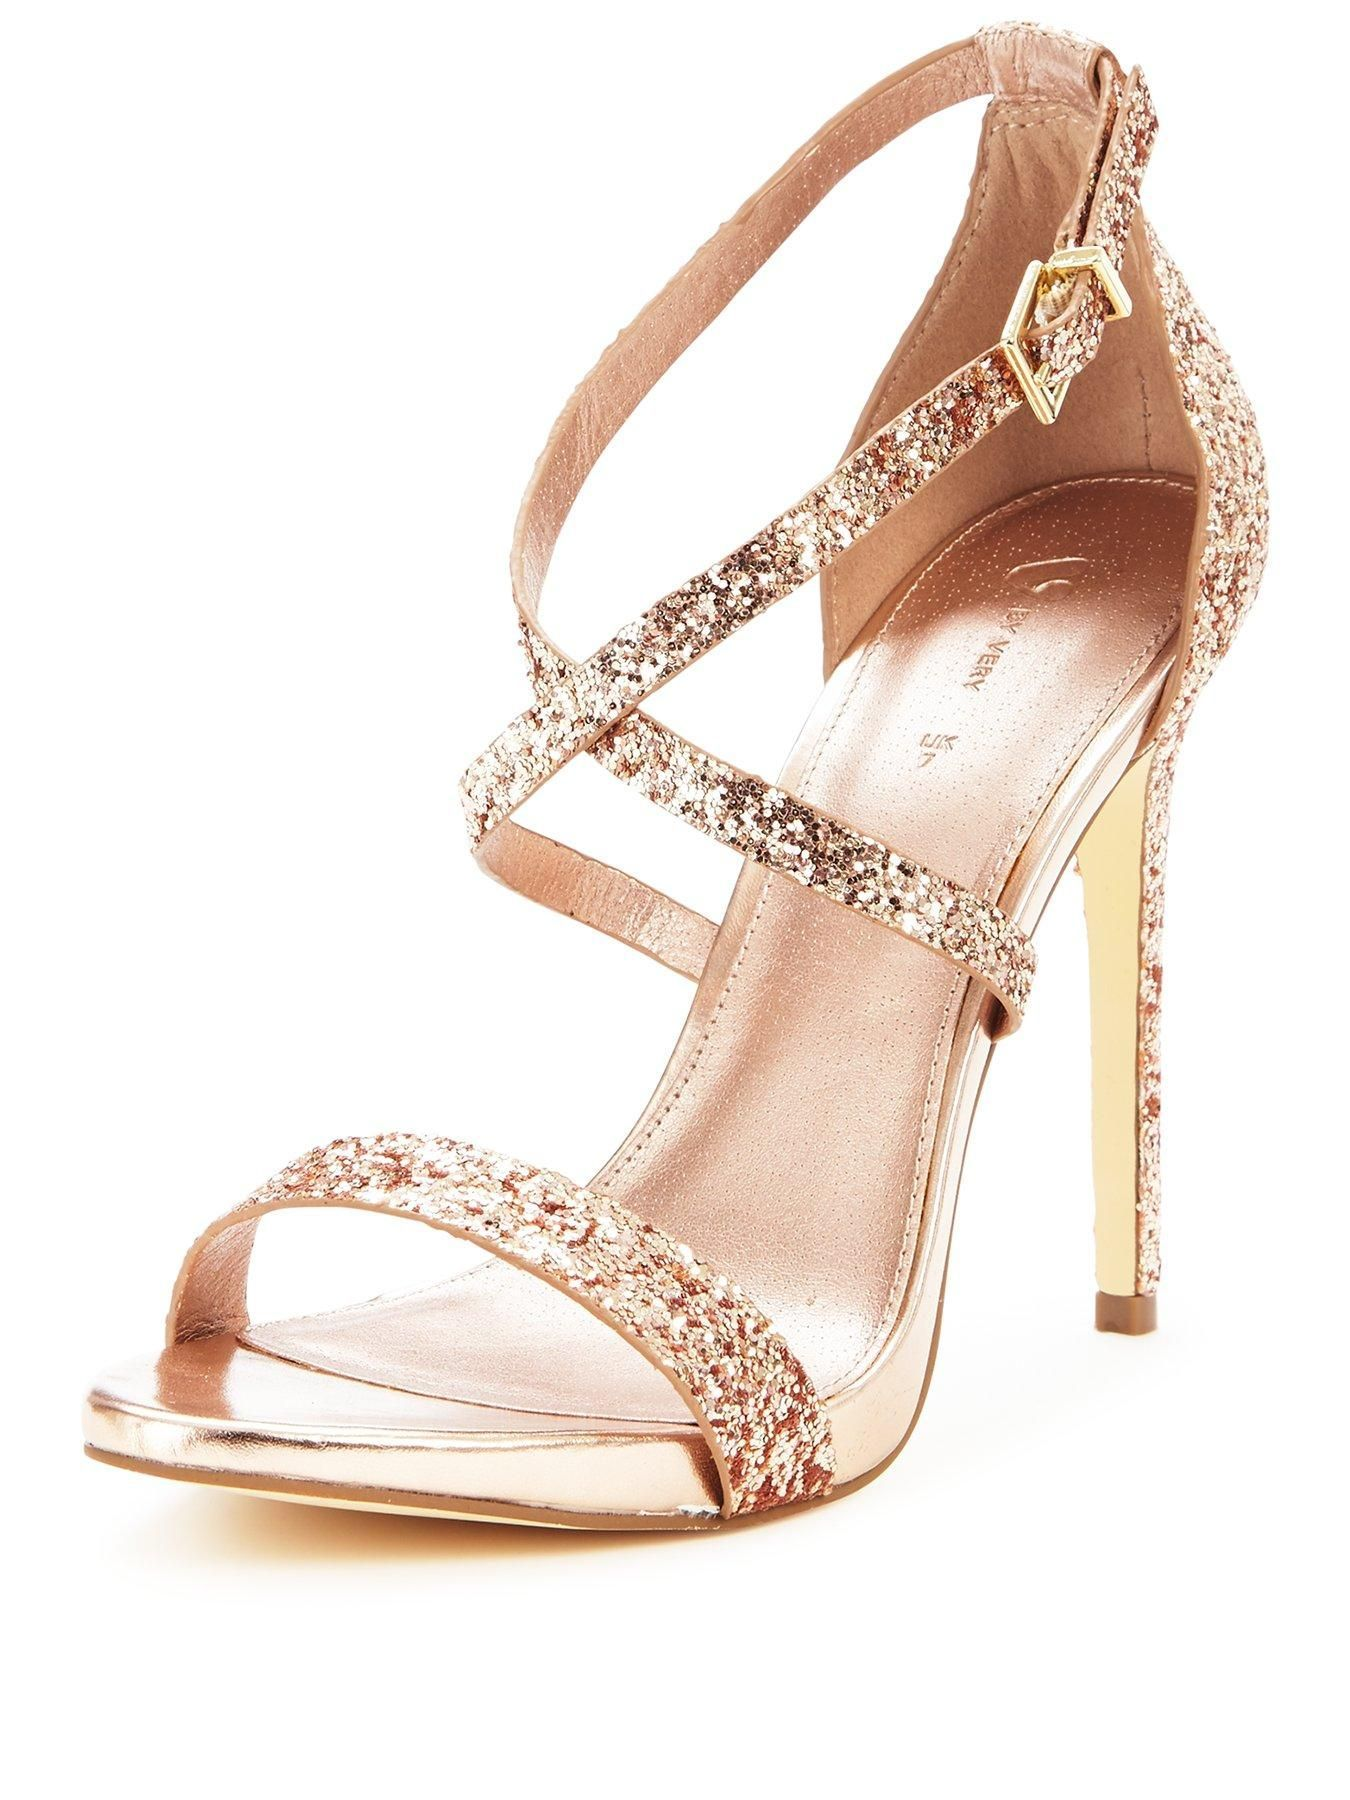 V by Very Caprice Glitter Heeled Sandals - Rose Gold Gorgeously girly and  super glam - these Caprice glitter heeled sandals from V by Very are a must  for ... 513cef9e7